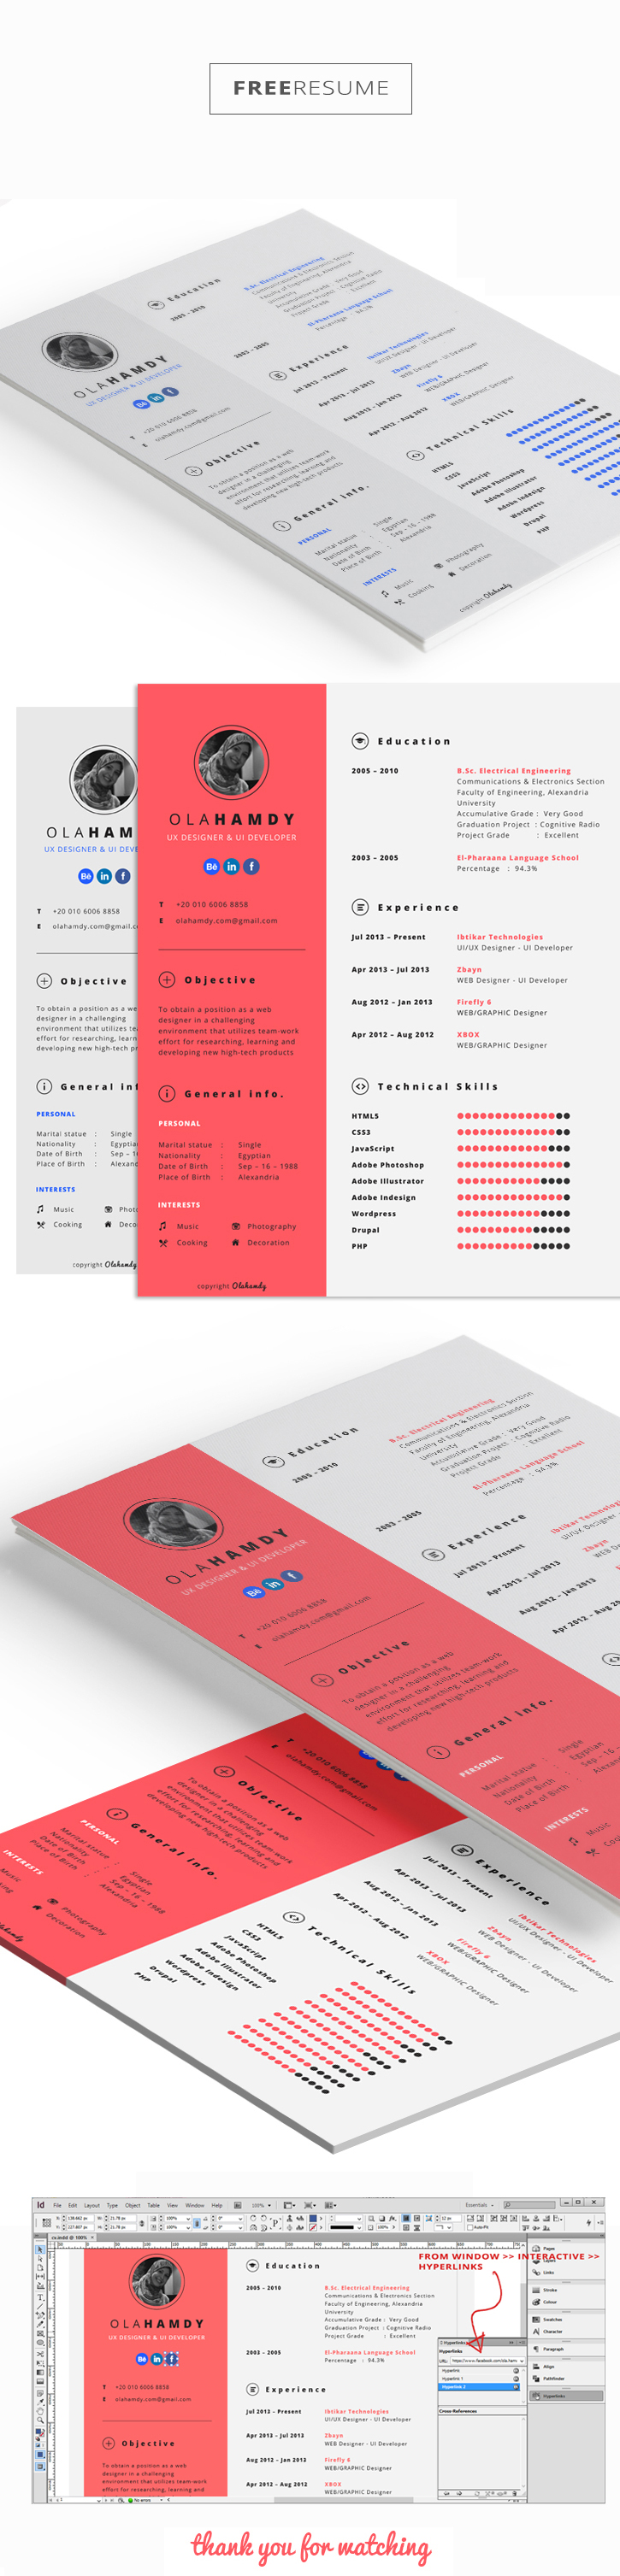 Free Indesign Resume